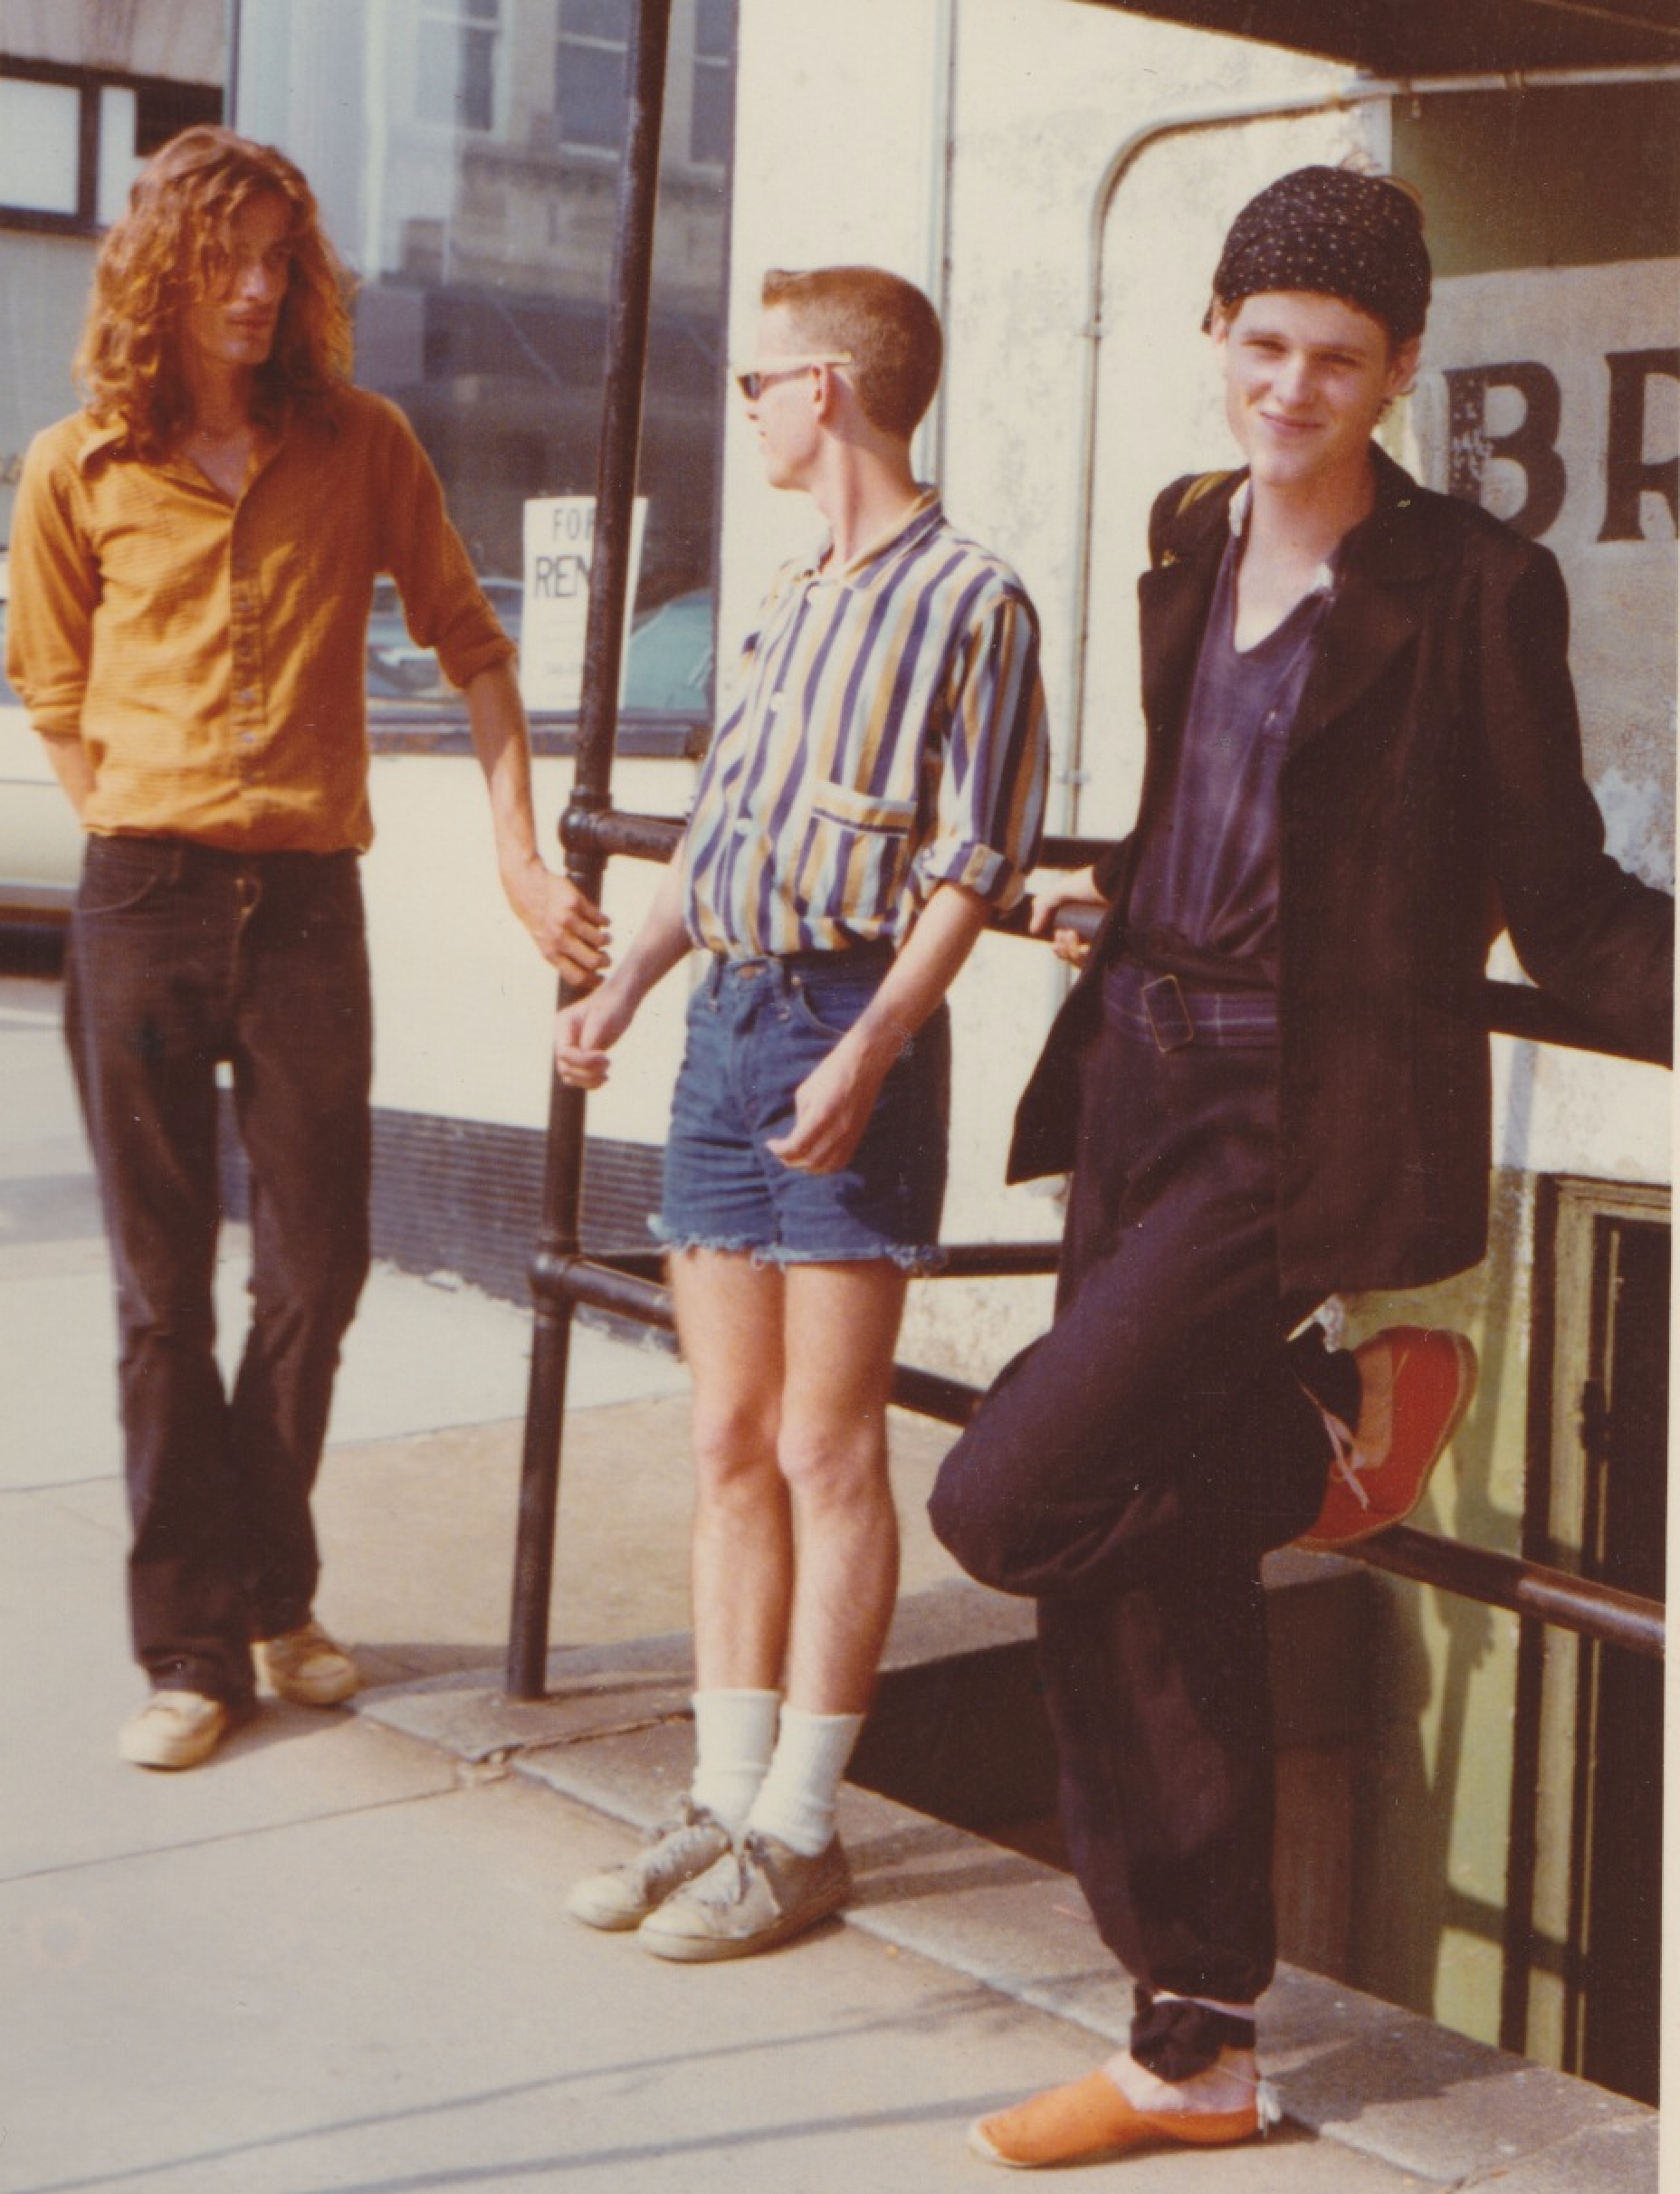 Larry Johnson, Ricky Wilson, and Keith Strickland 1976 by Cindy Wilson